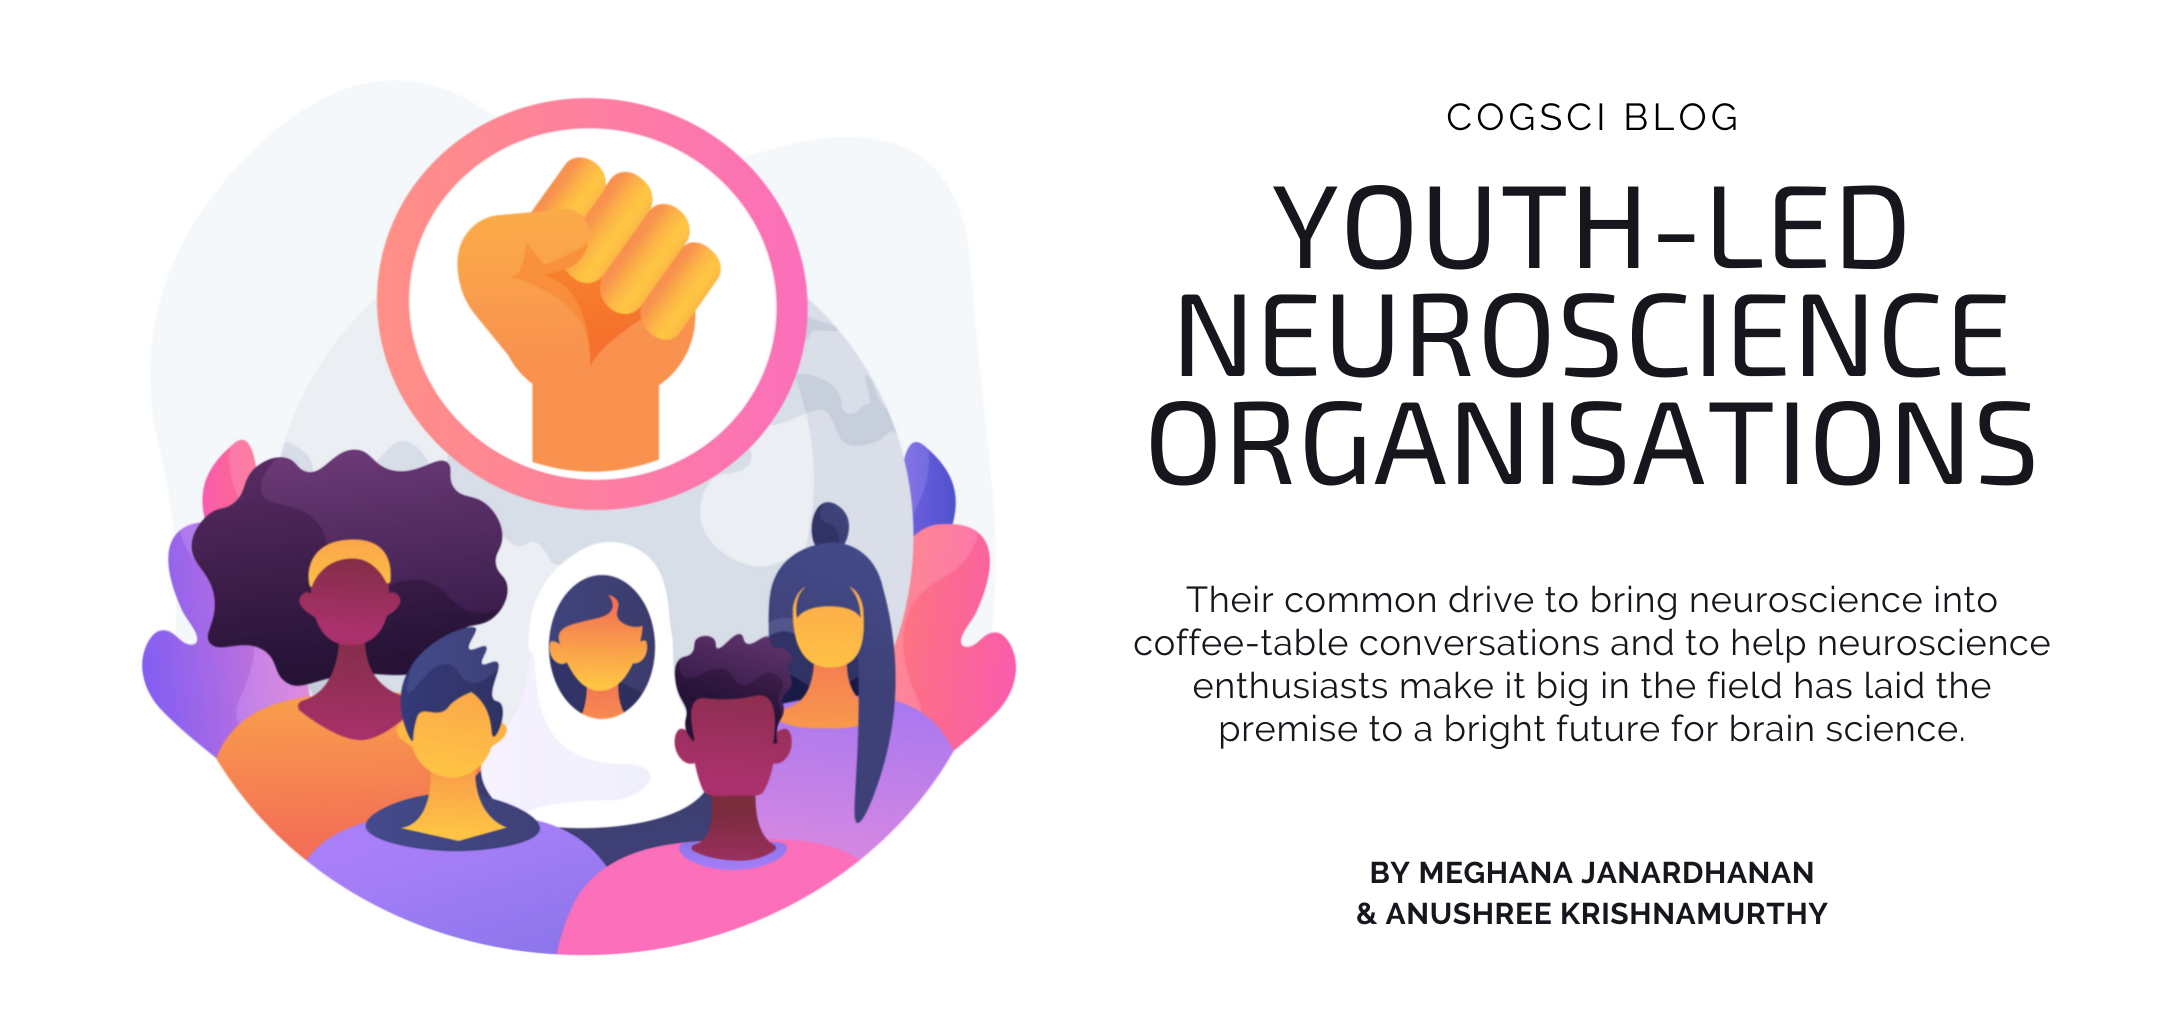 Cover image for the youth-led neuroscience organisation blog post